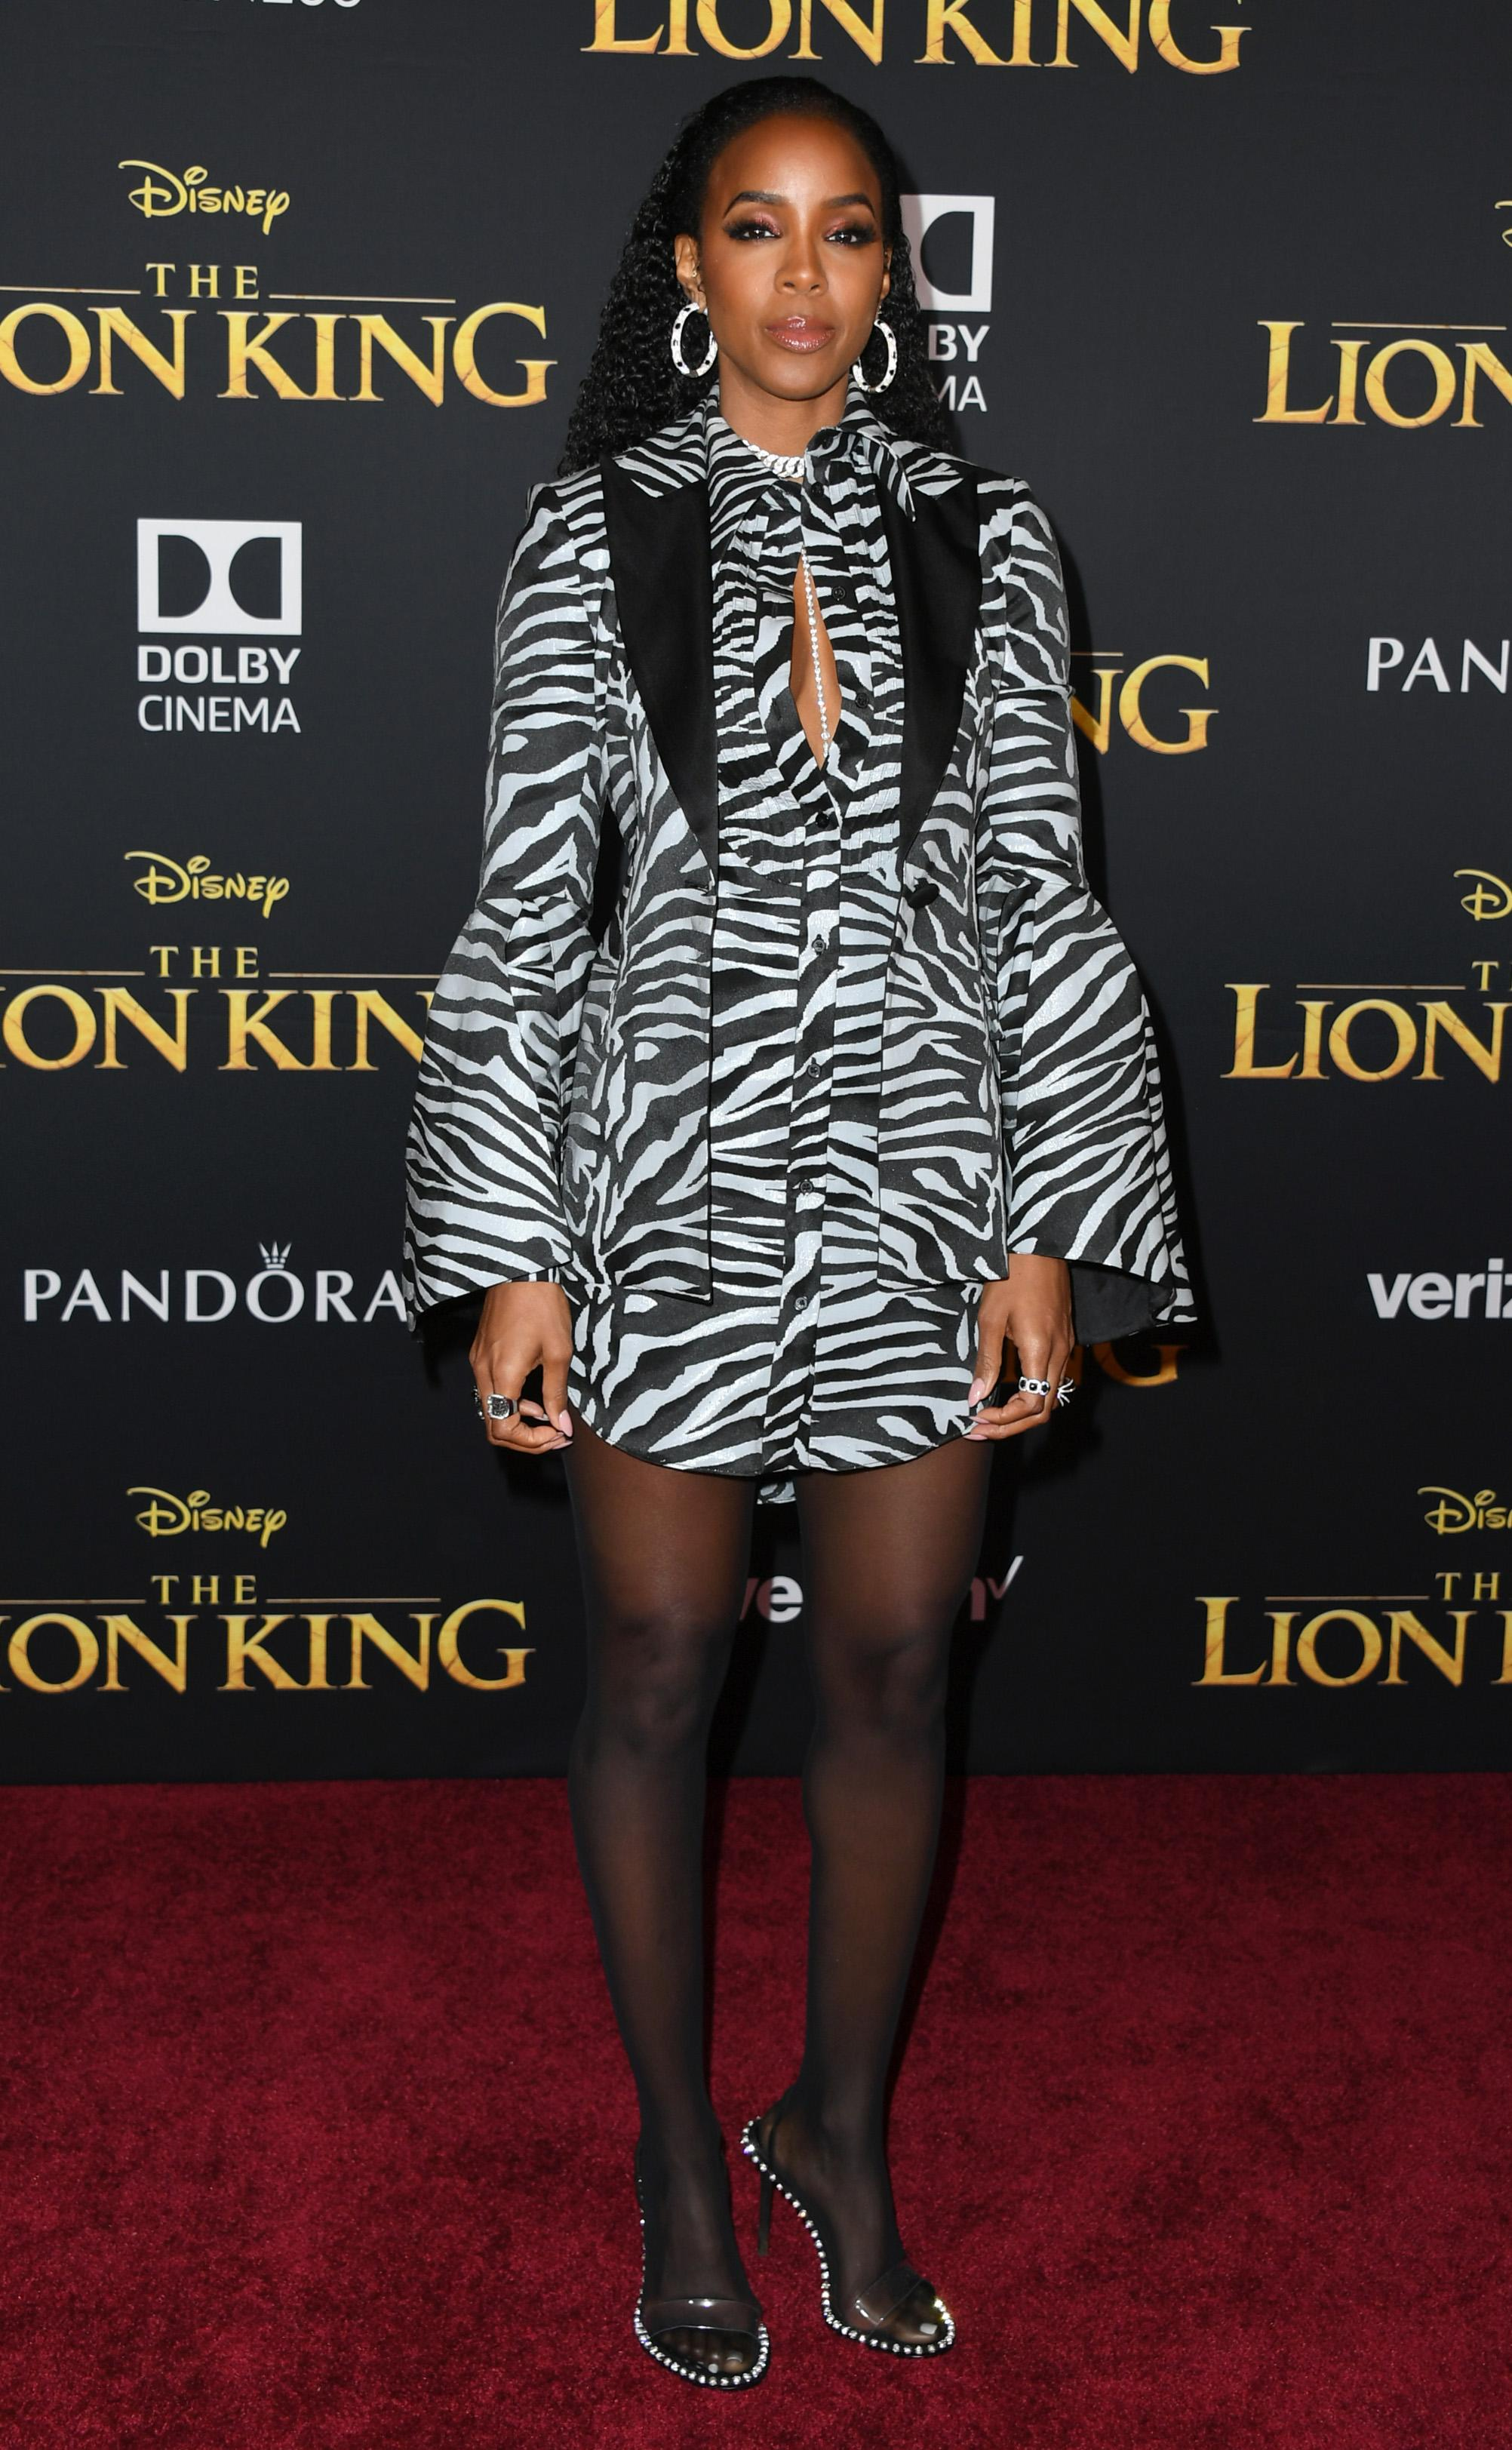 "HOLLYWOOD, CALIFORNIA - JULY 09: Kelly Rowland attends the Premiere Of Disney's ""The Lion King"" at Dolby Theatre on July 09, 2019 in Hollywood, California. (Photo by Jon Kopaloff/FilmMagic)"